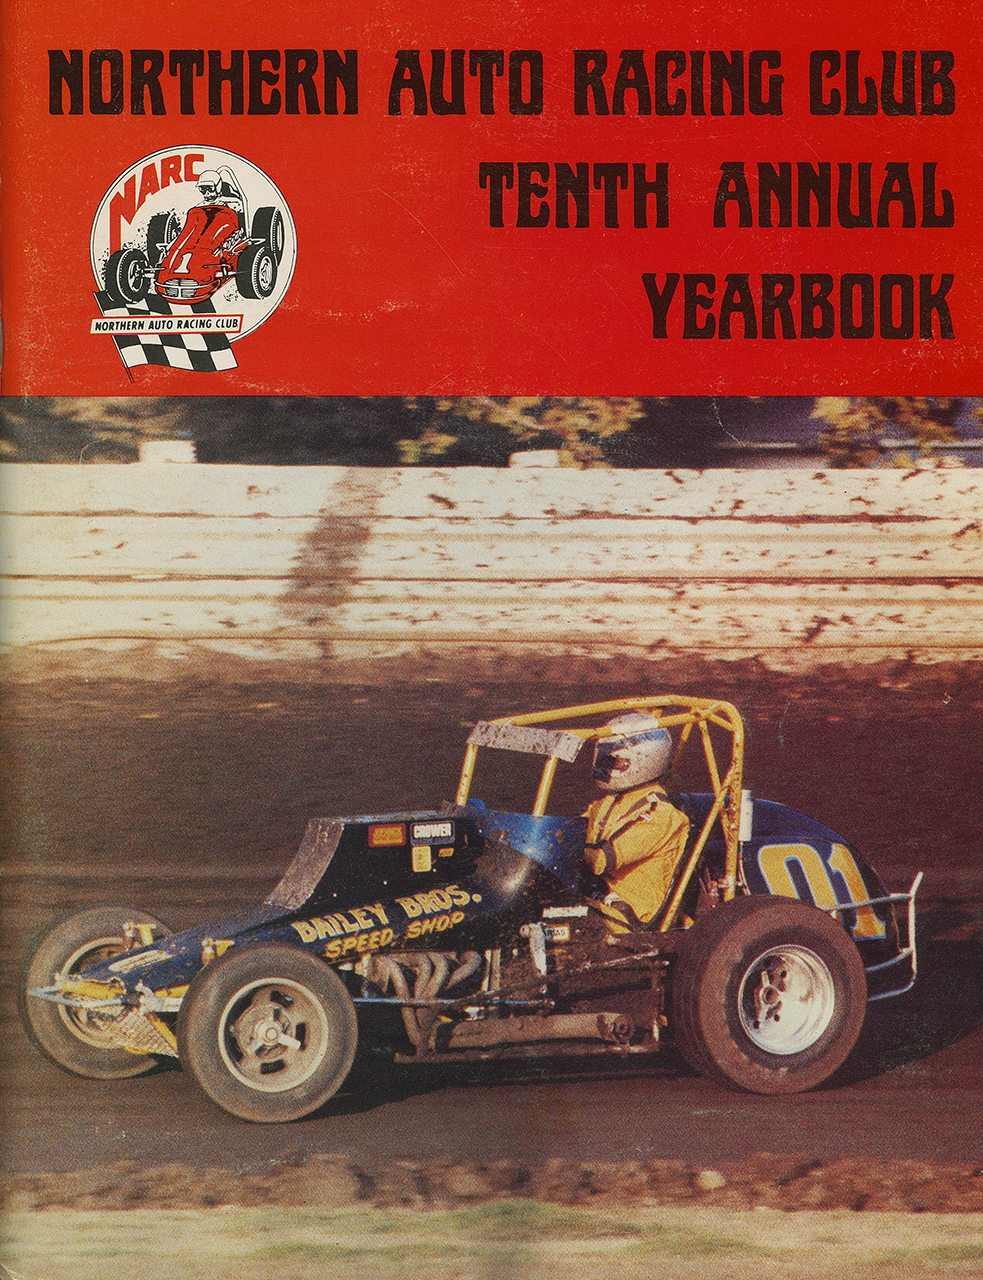 Van Conett driving the Bailey Brothers 01, on the cover of the 1978 NARC yearbook.